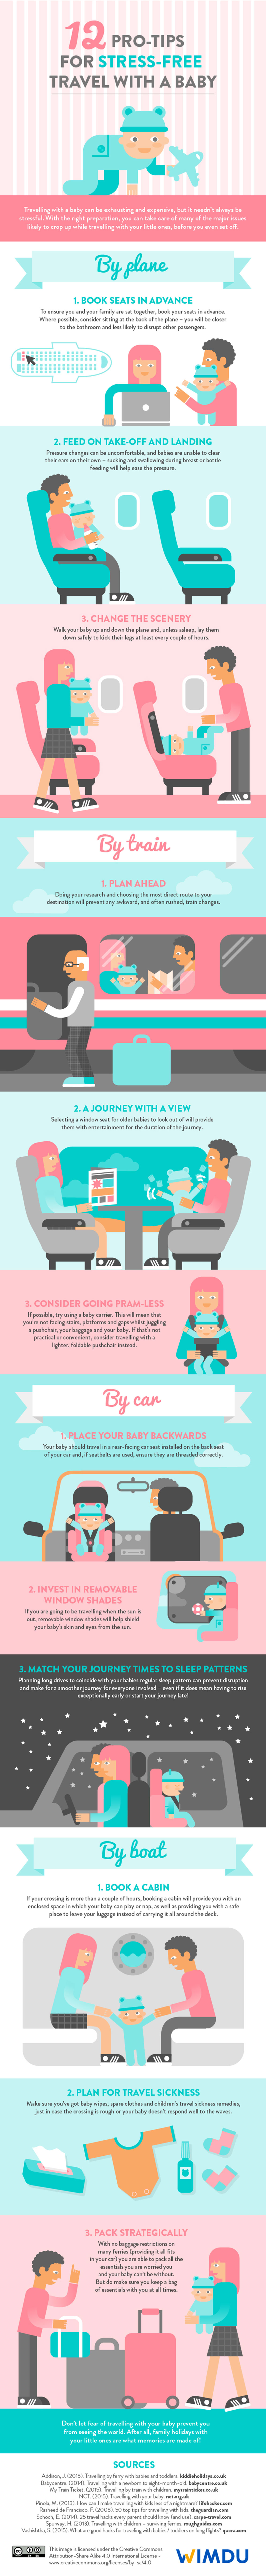 Pro Tips for Stress-Free Travel with a Baby Infographic